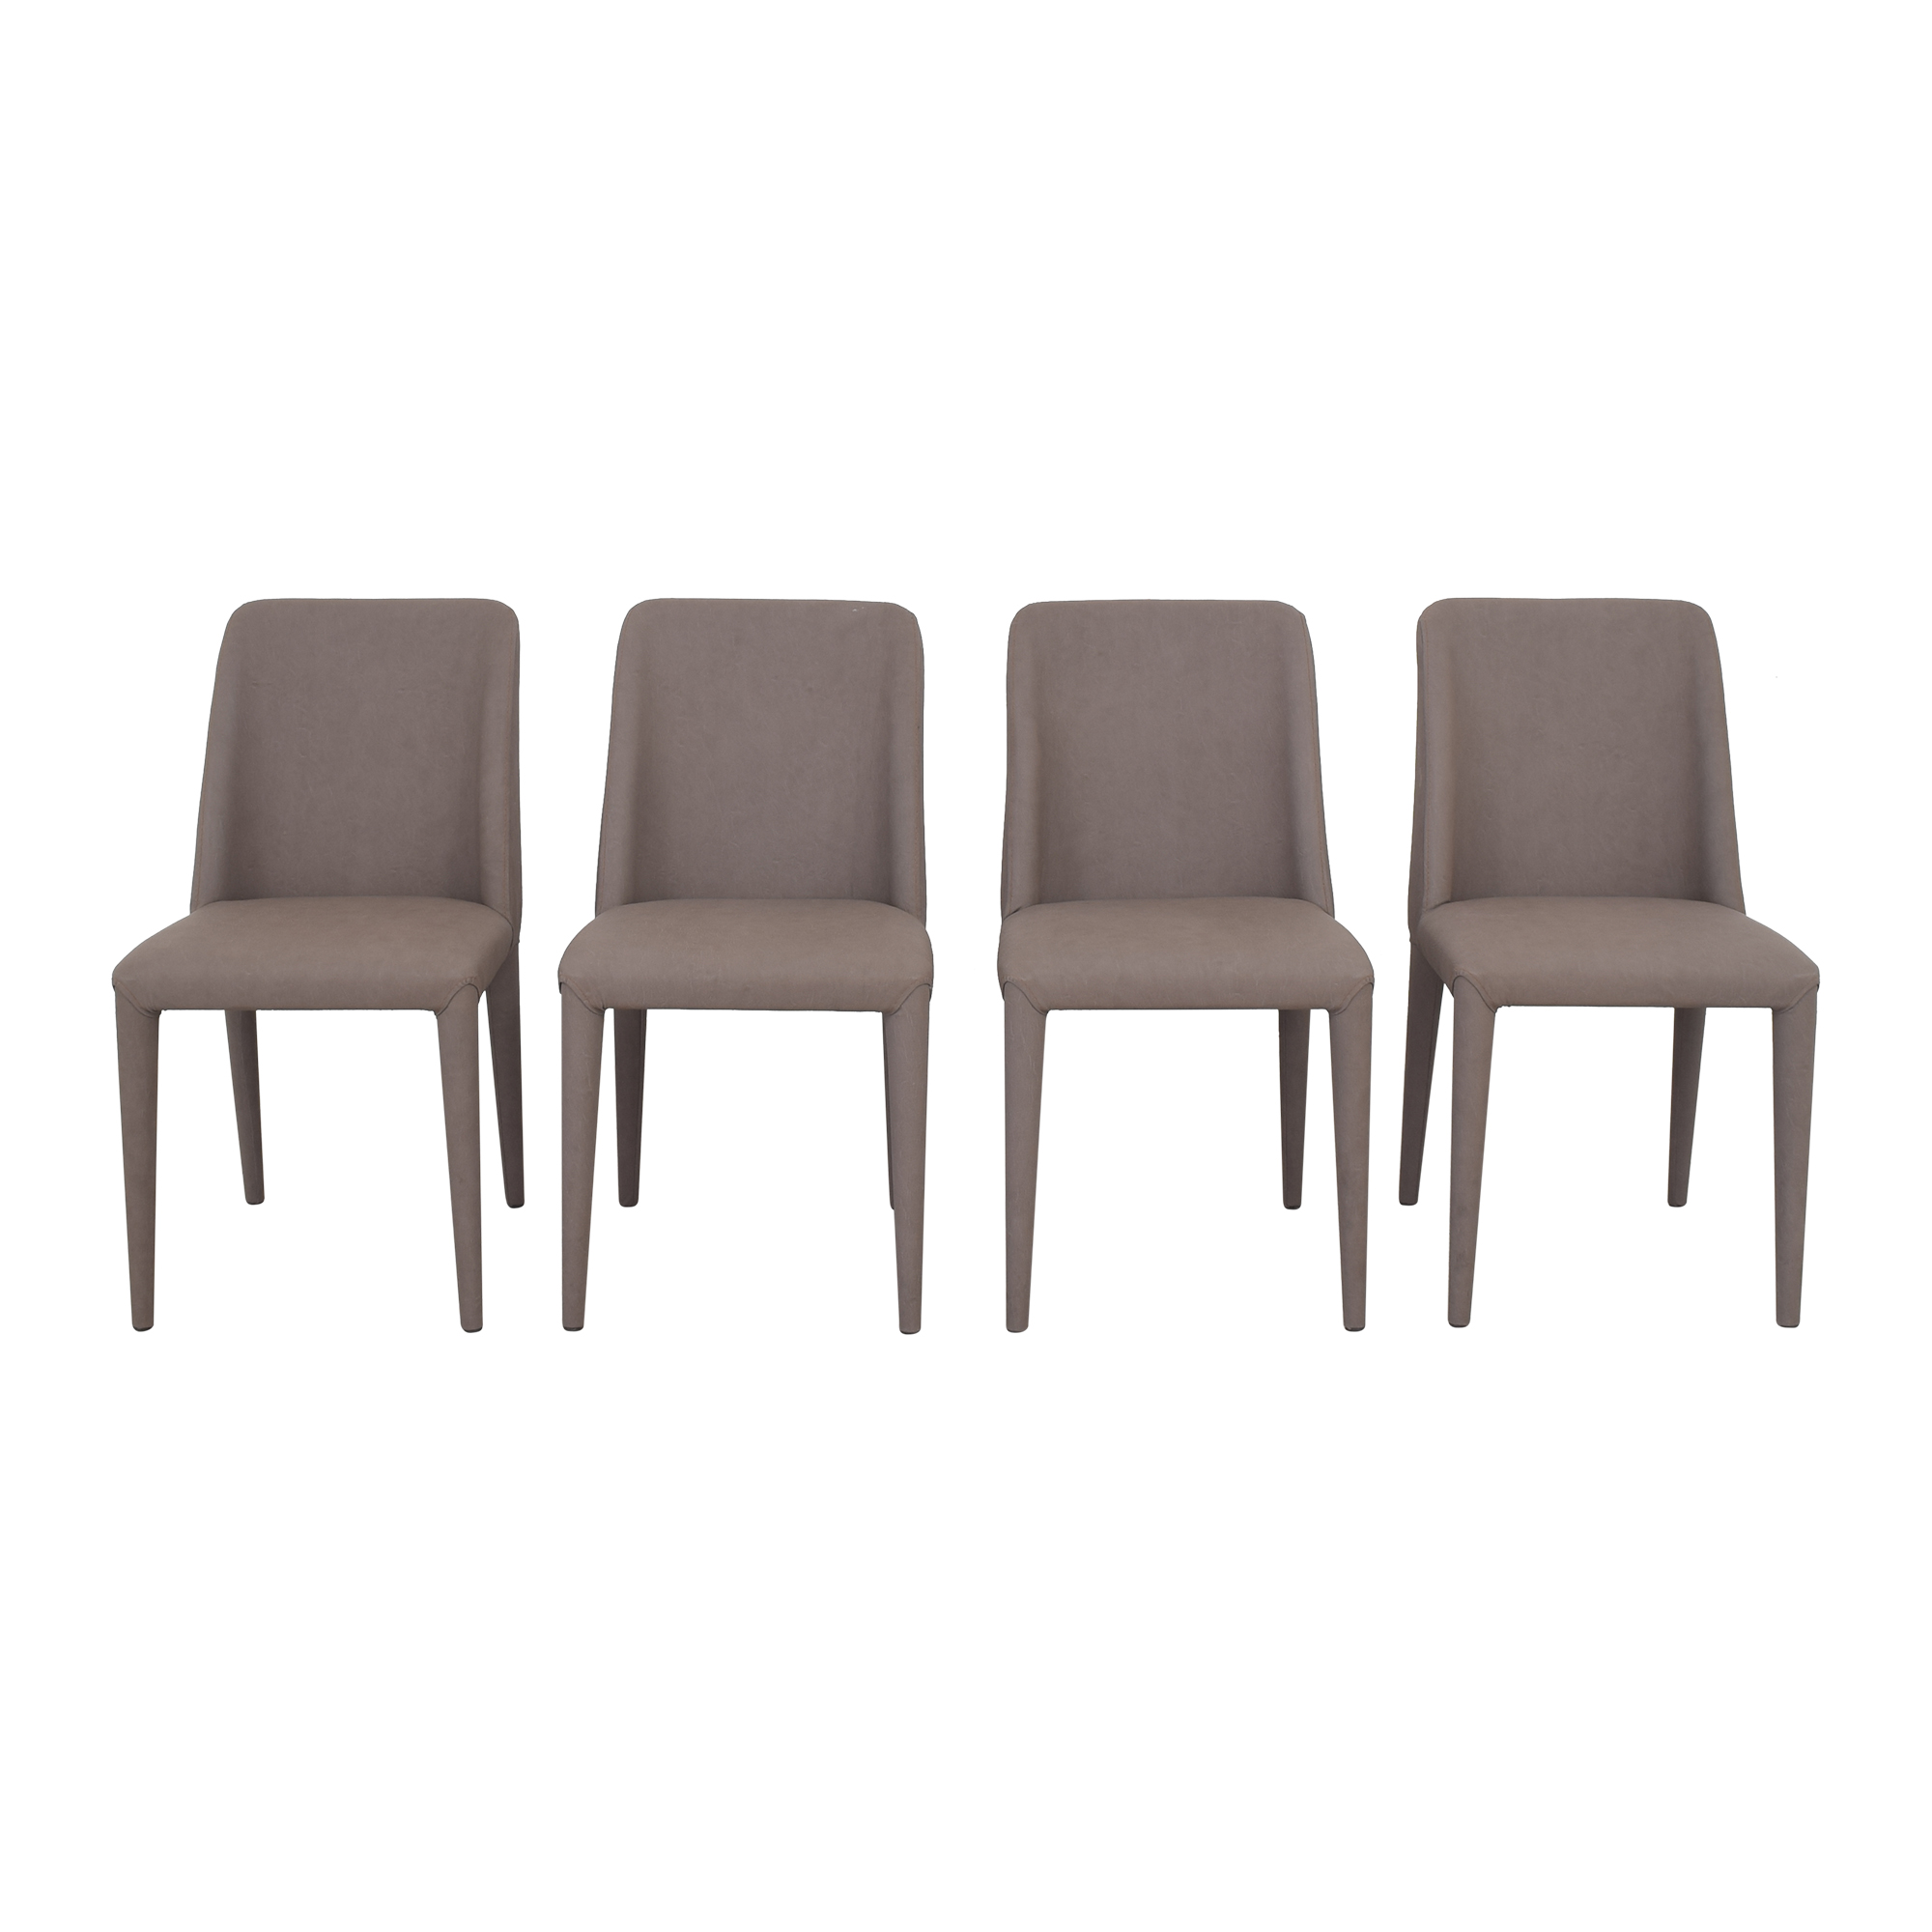 Lazzoni Lazzoni Aria Dining Chairs second hand